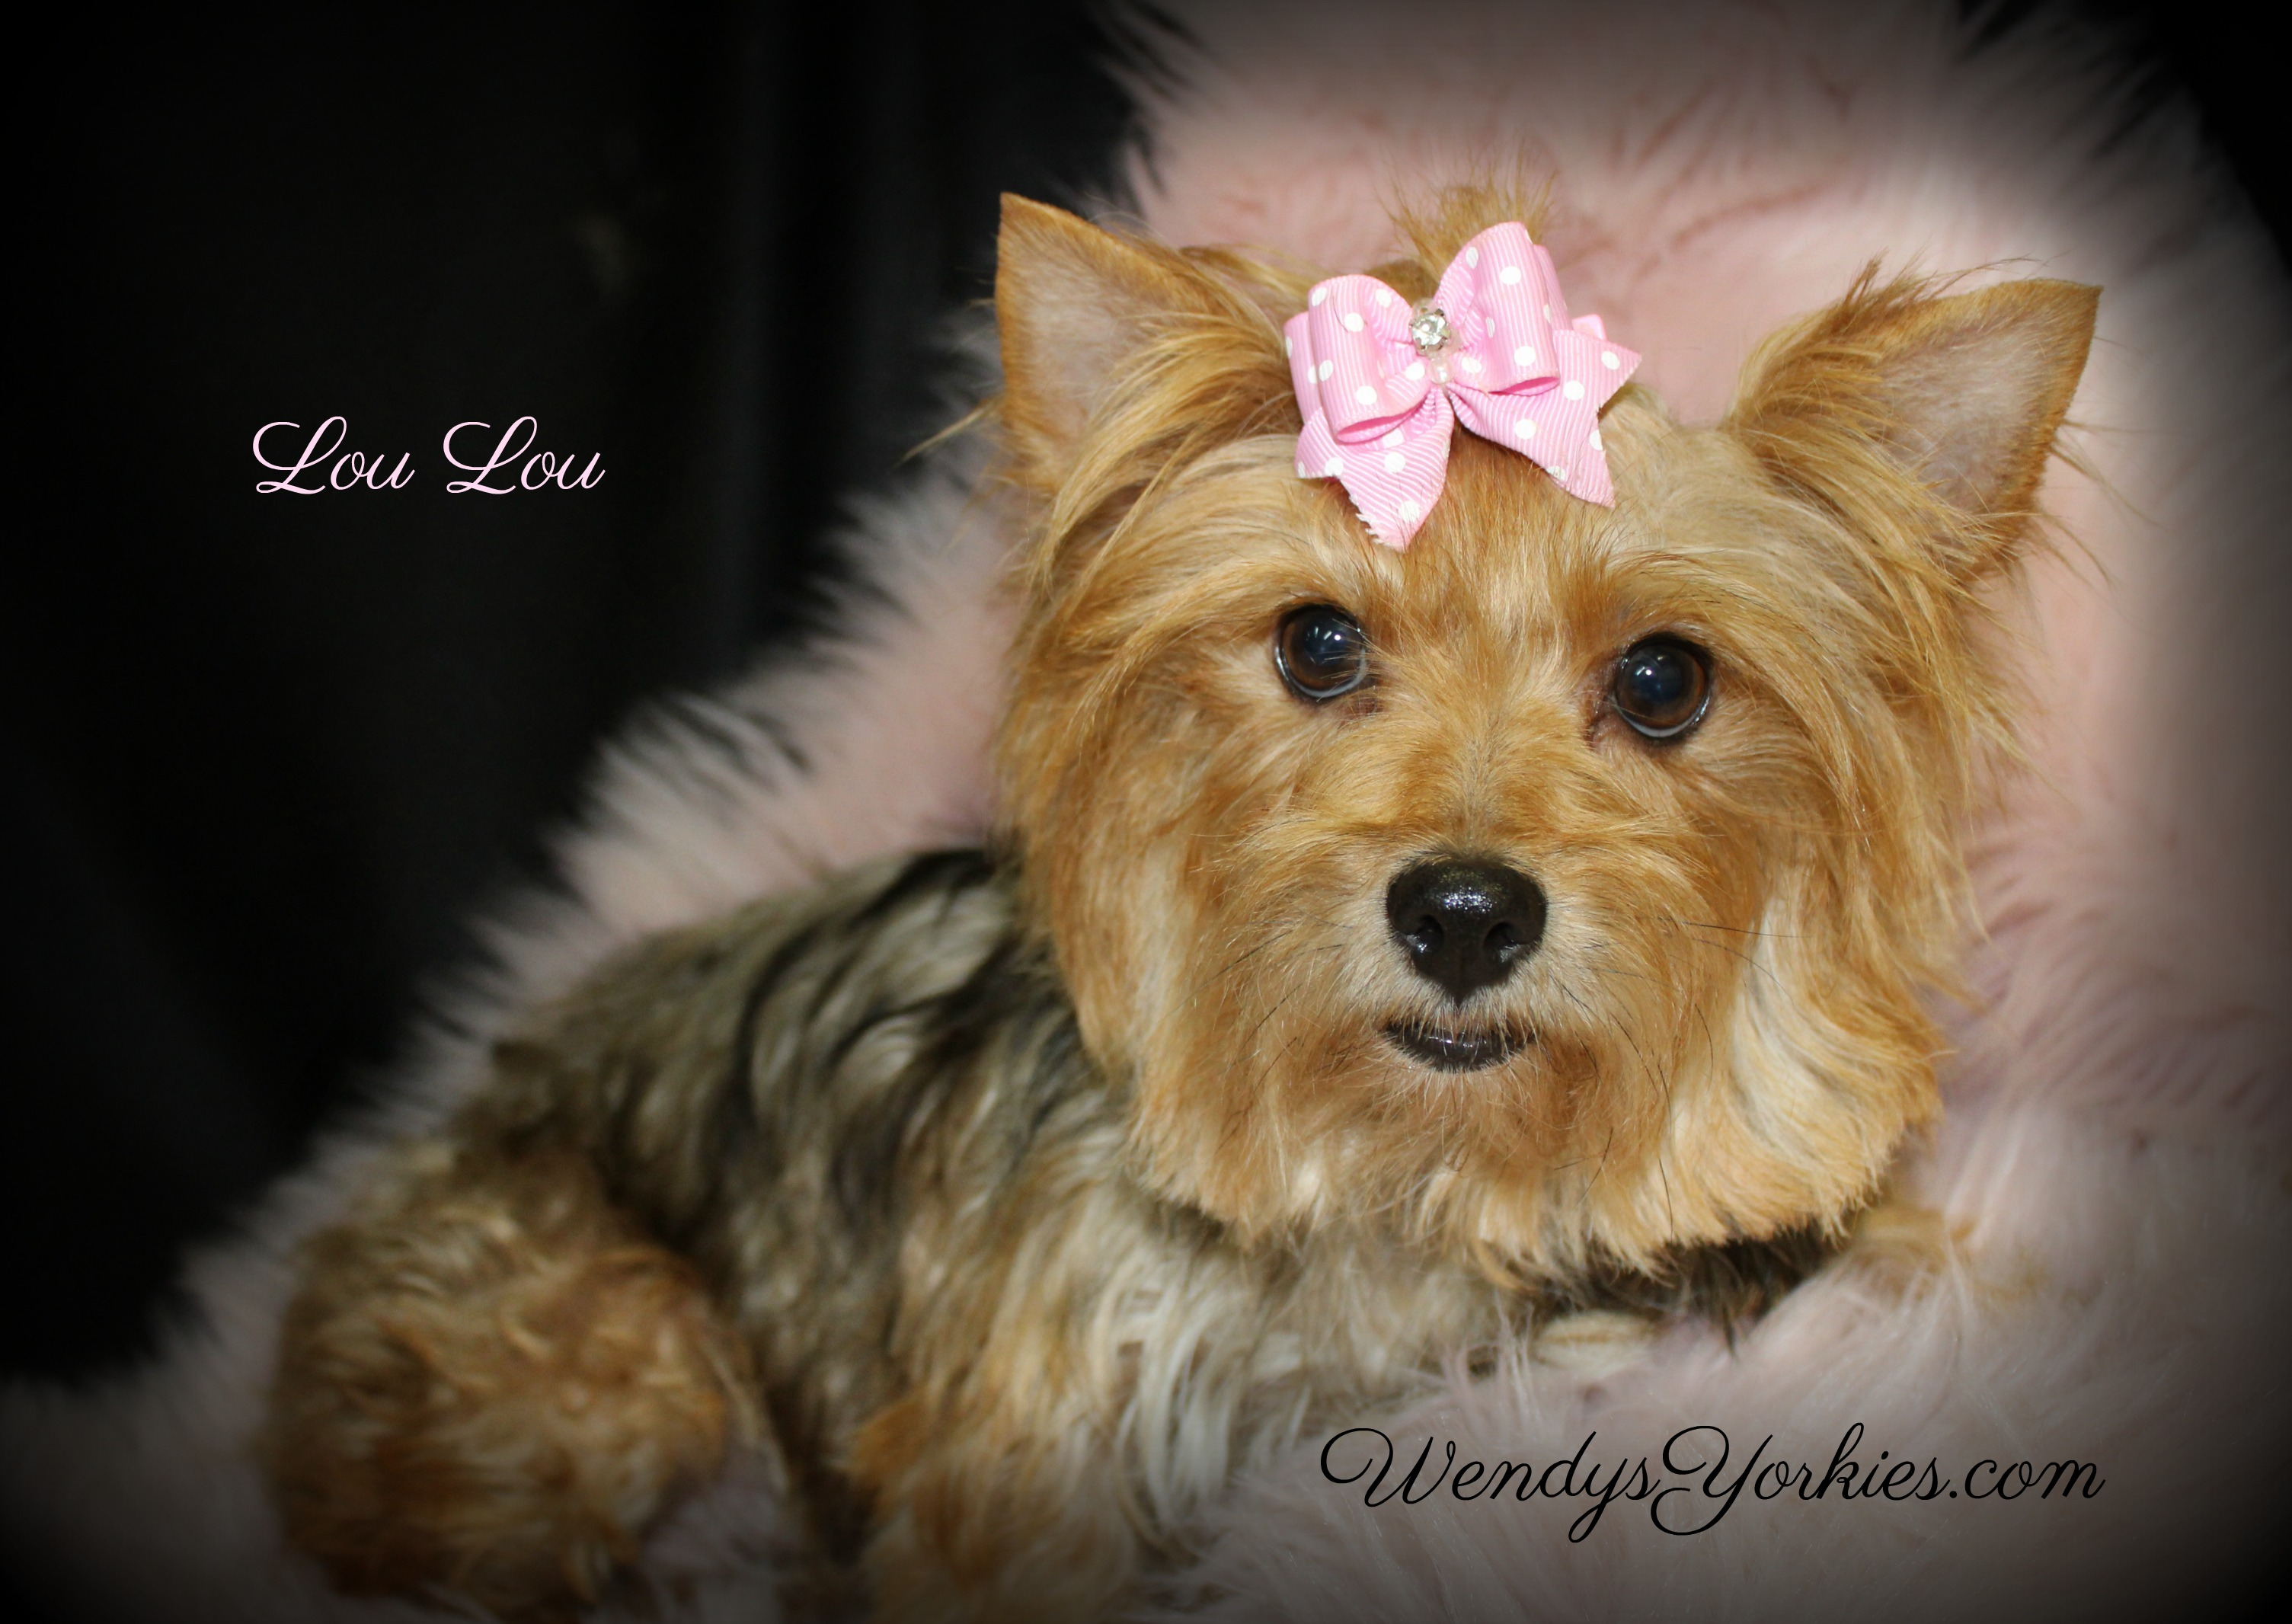 Female Yorkie, WendysYorkies.com, Yorkie puppy breeder in Texas, Loulou